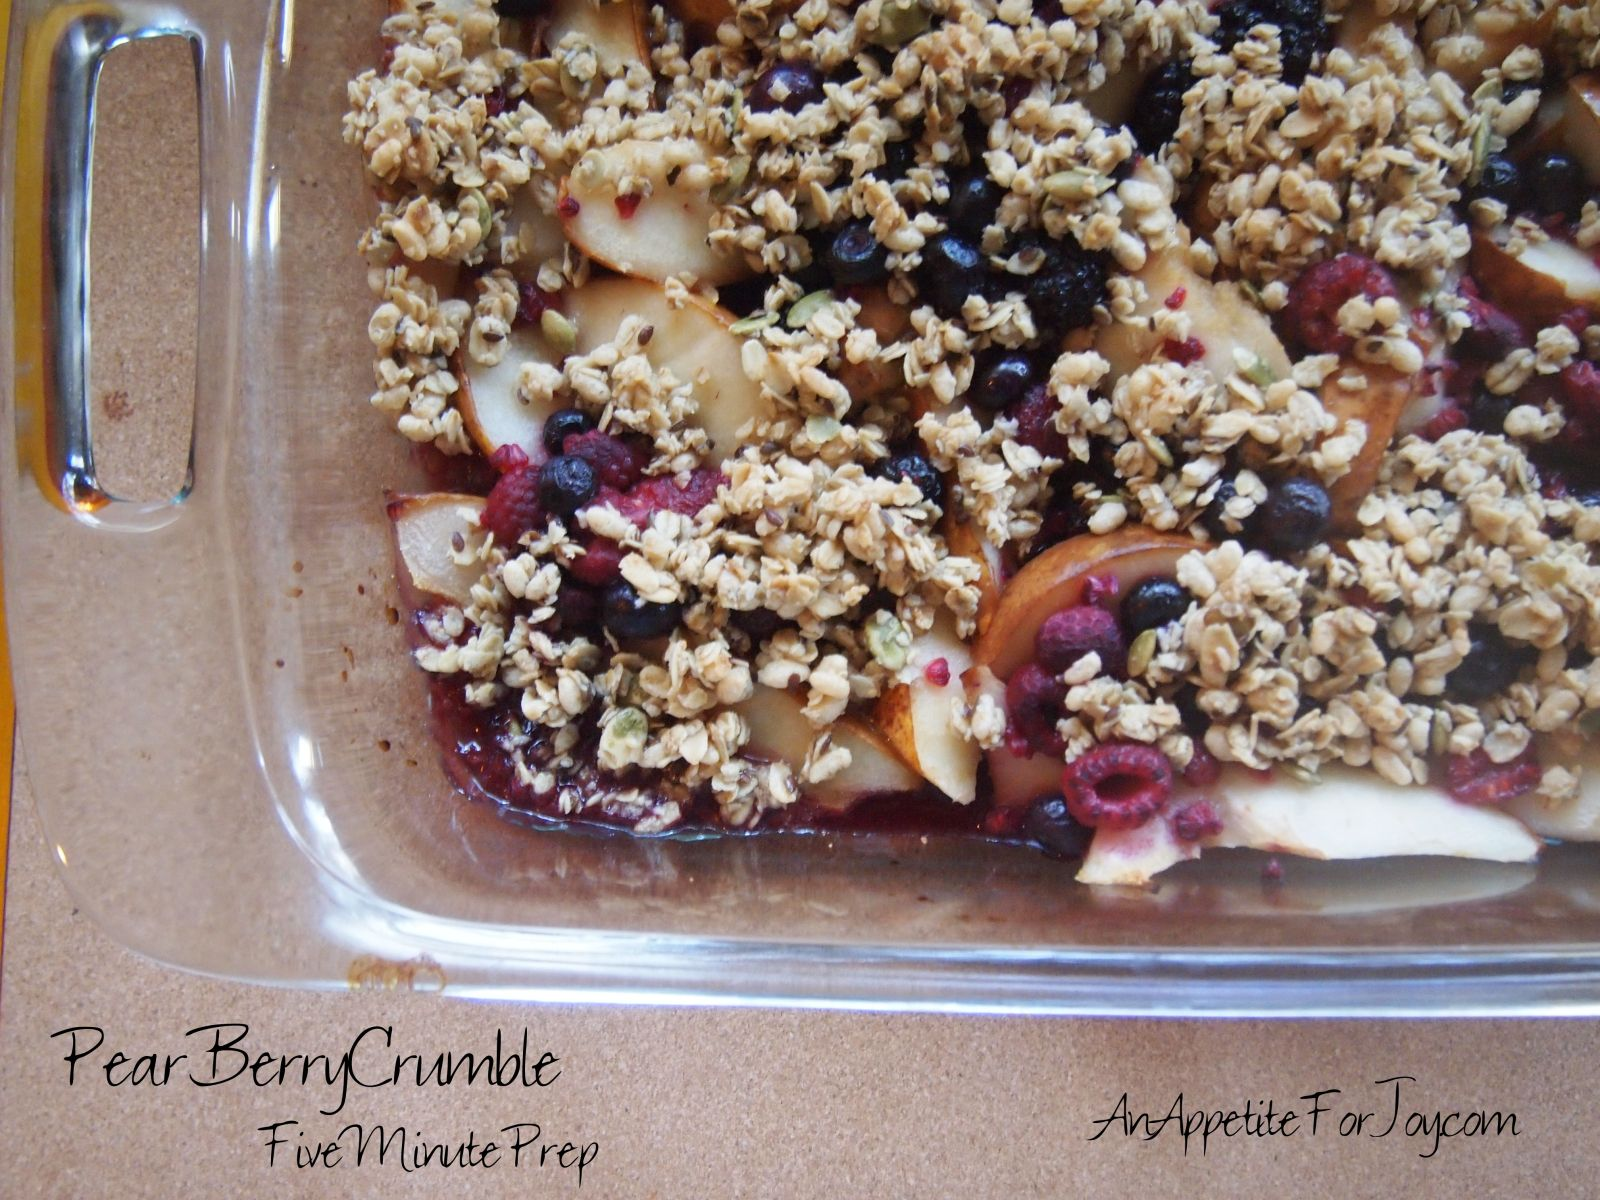 Pear Berry Crumble (5 Minute Prep, Healthy!)